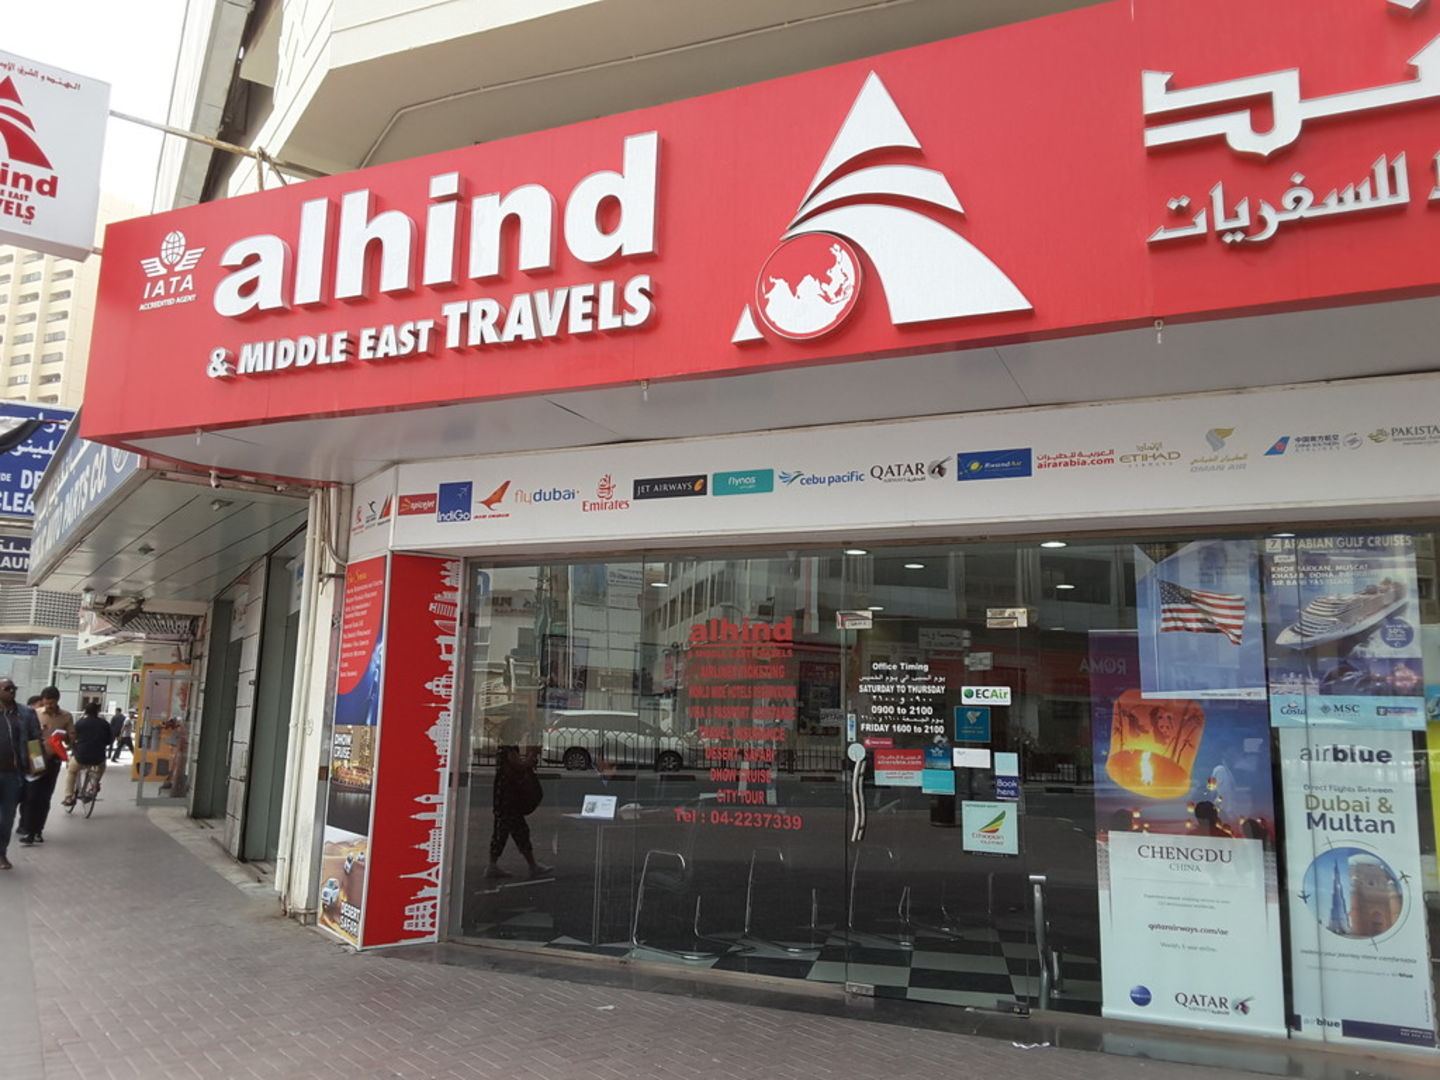 HiDubai-business-alhind-middle-east-travels-hotels-tourism-local-tours-activities-naif-dubai-2